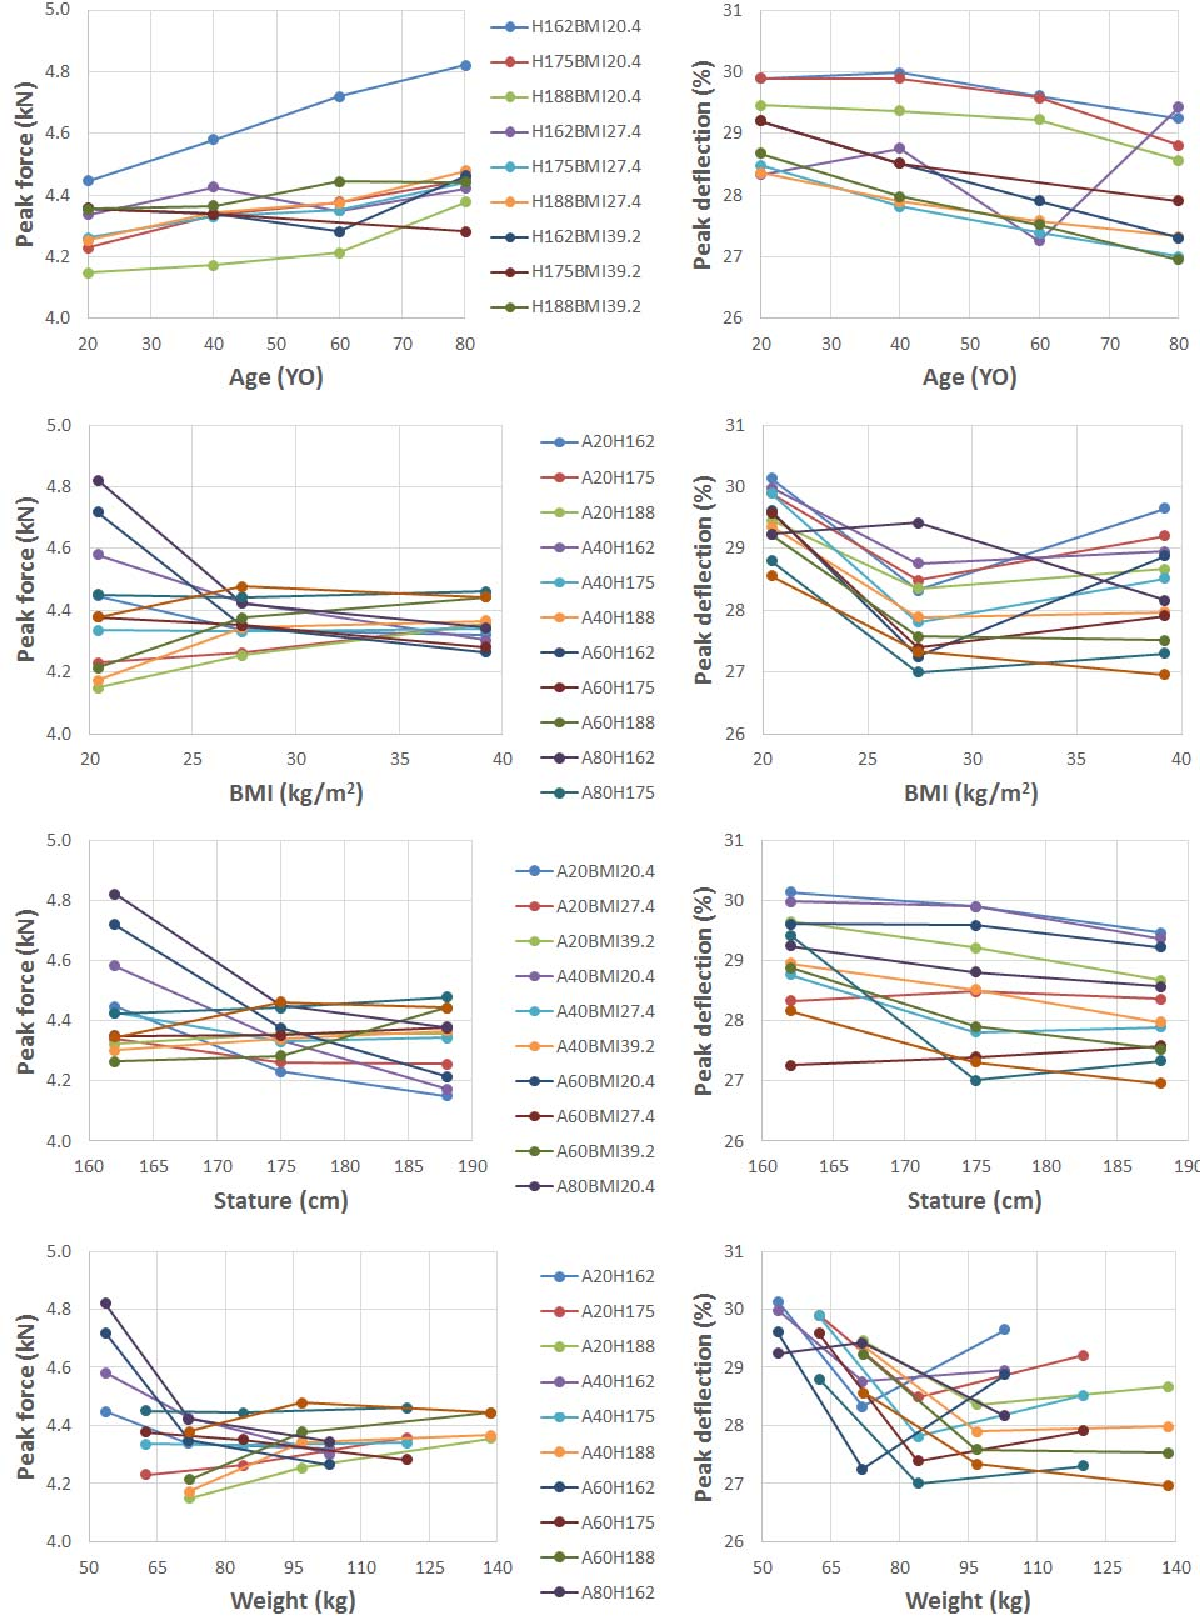 Figure 5. Occupant characteristic effects on chest impact responses based on the morphed THUMS models A: Age(year-old), H: Height(cm), and BMI: Body Mass Index(kg/m2)